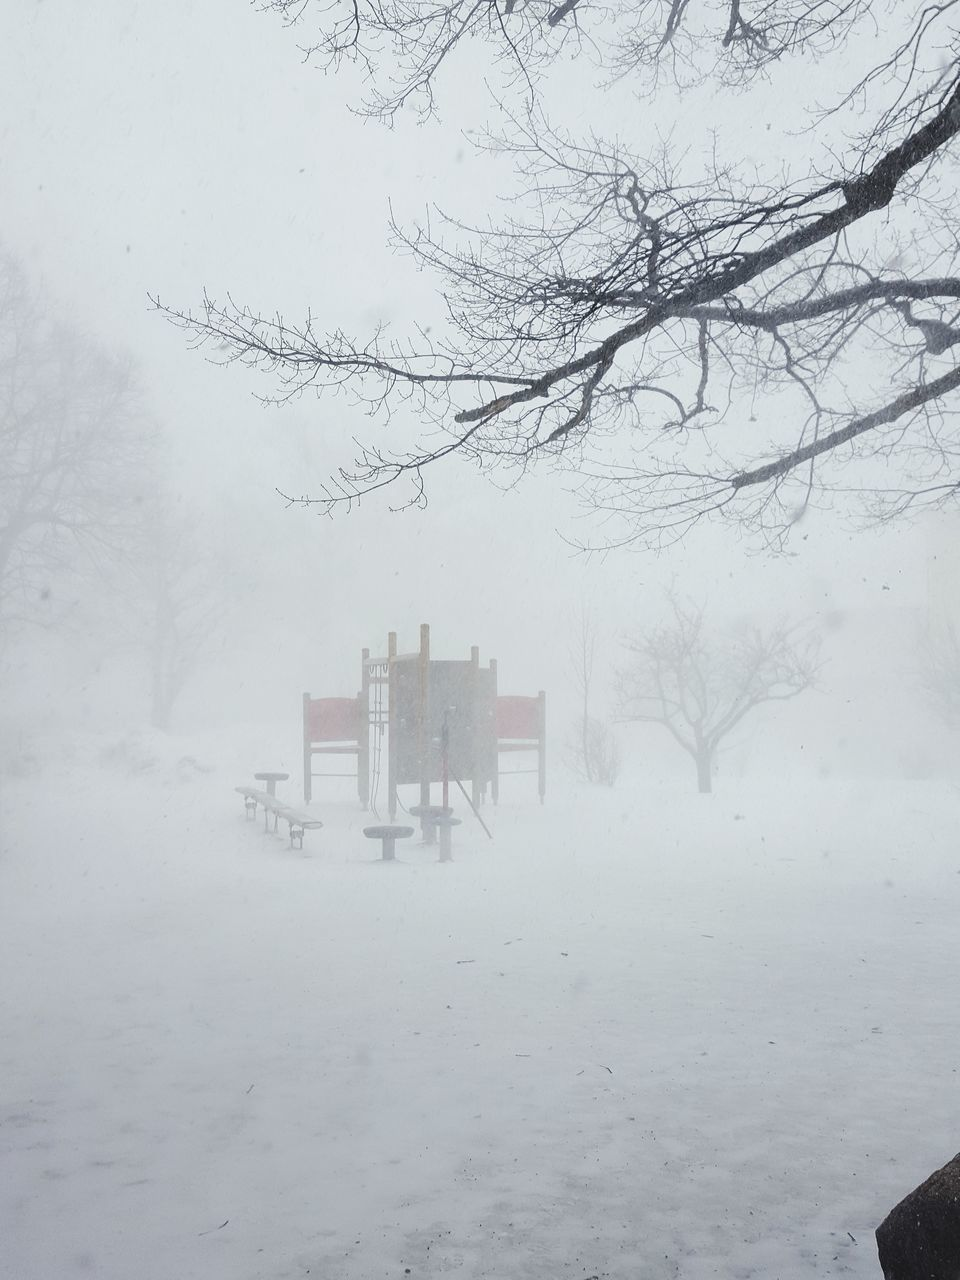 SNOW COVERED LANDSCAPE DURING FOGGY WEATHER